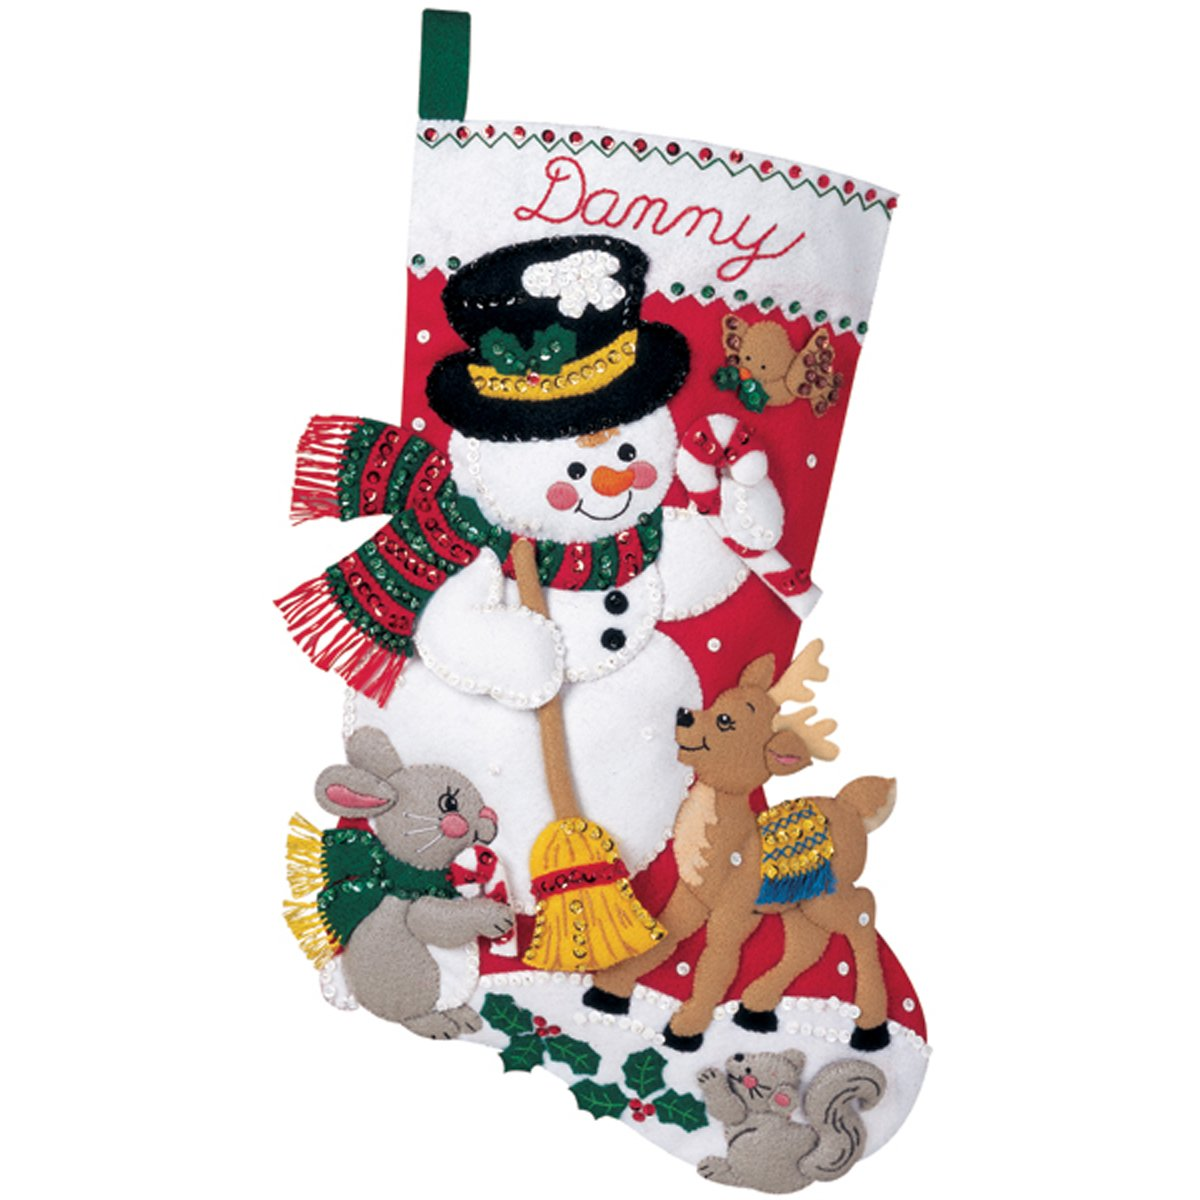 Bucilla 84951I Felt Applique Kit, Snowman and Friends by Bucilla